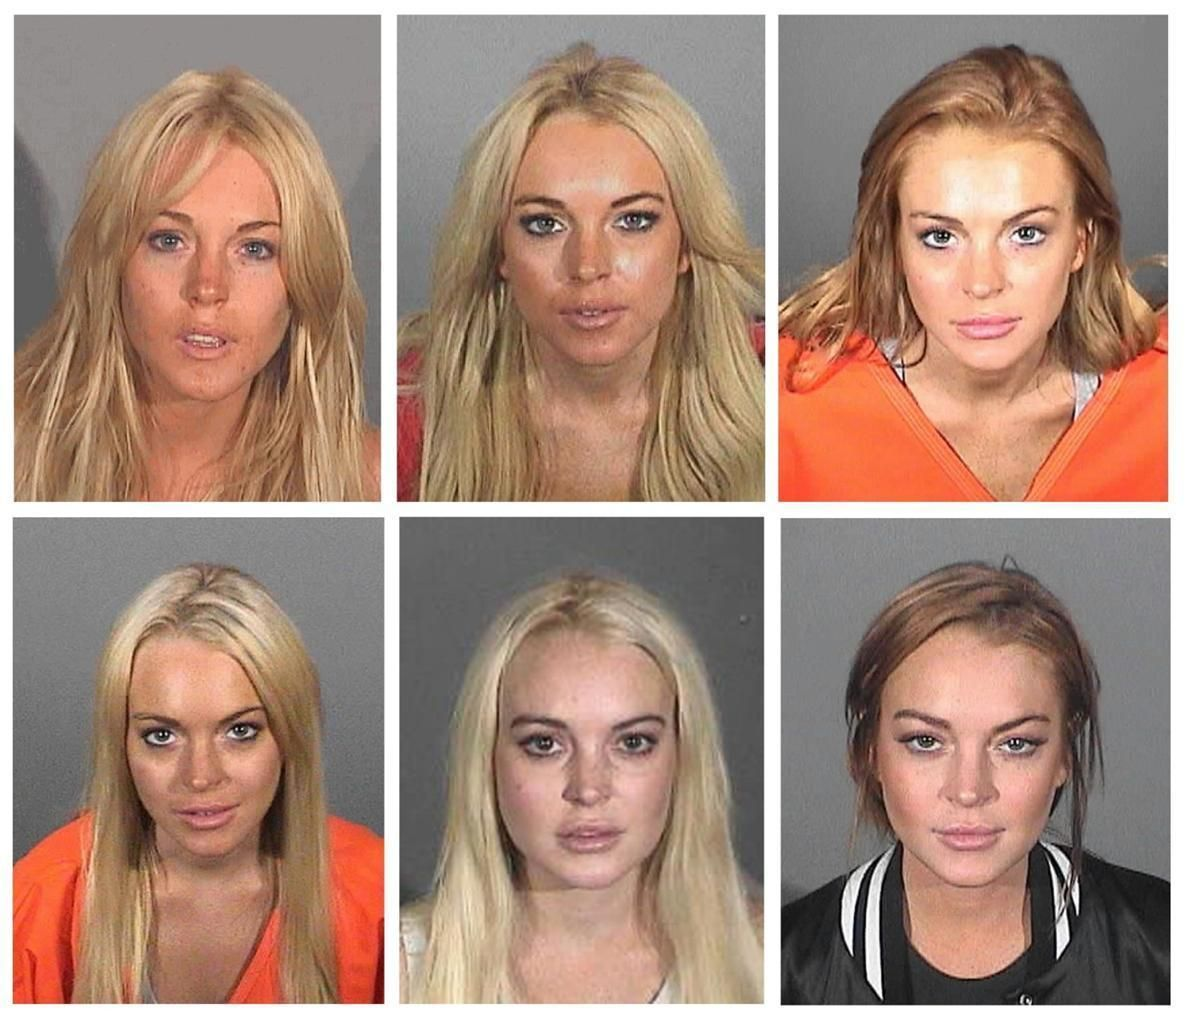 LINDSAY LOHAN MUG SHOTS GLOSSY POSTER PICTURE PHOTO ...